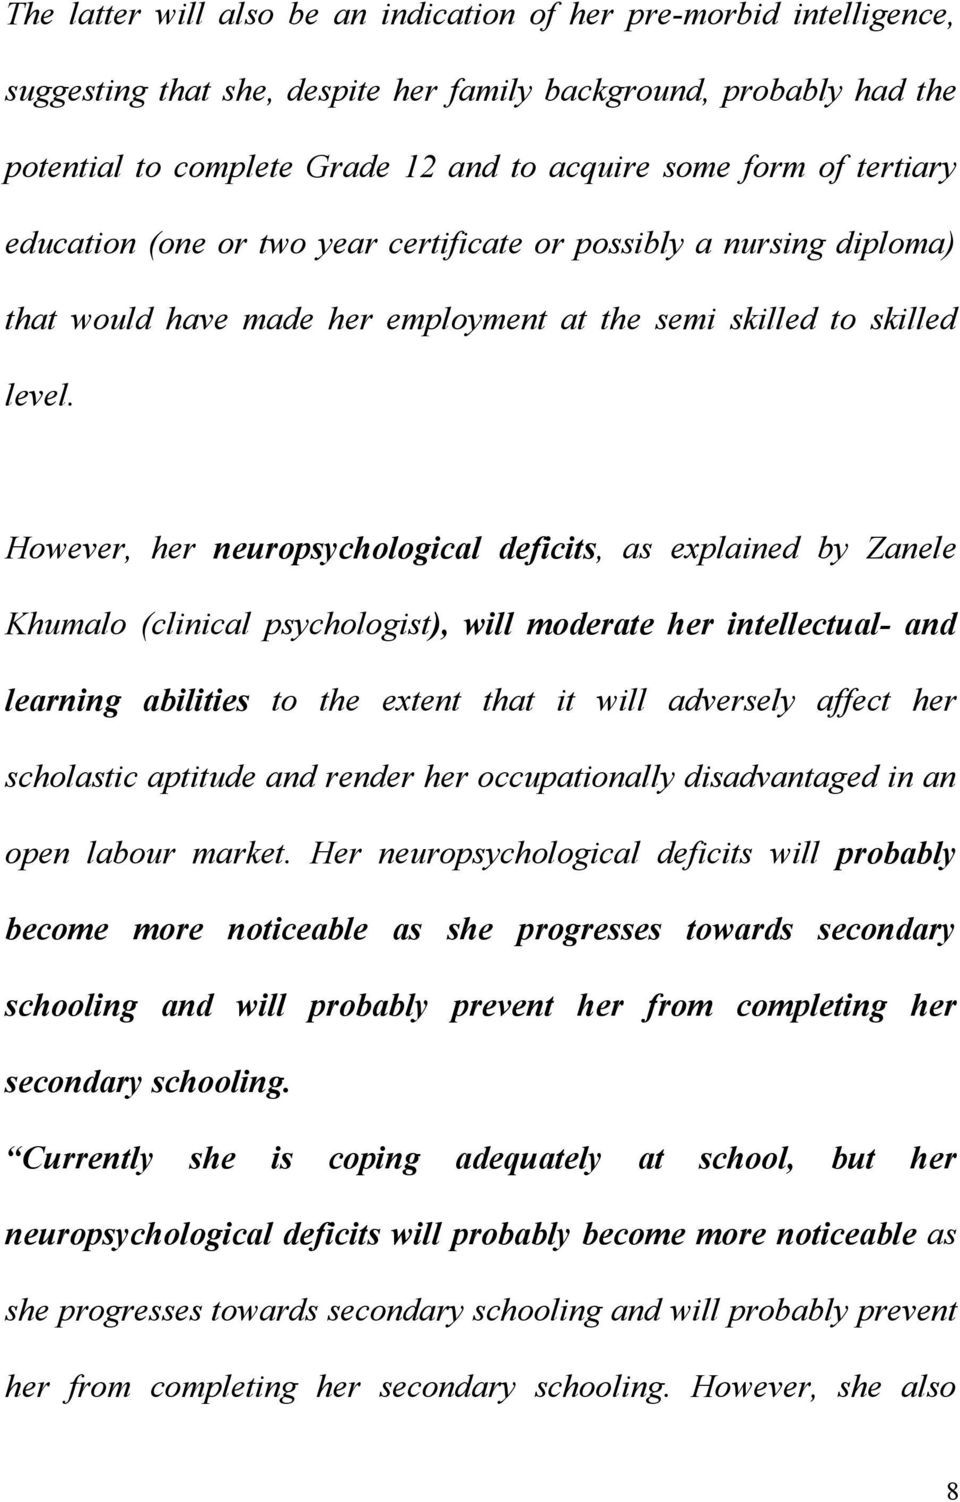 However, her neuropsychological deficits, as explained by Zanele Khumalo (clinical psychologist), will moderate her intellectual- and learning abilities to the extent that it will adversely affect